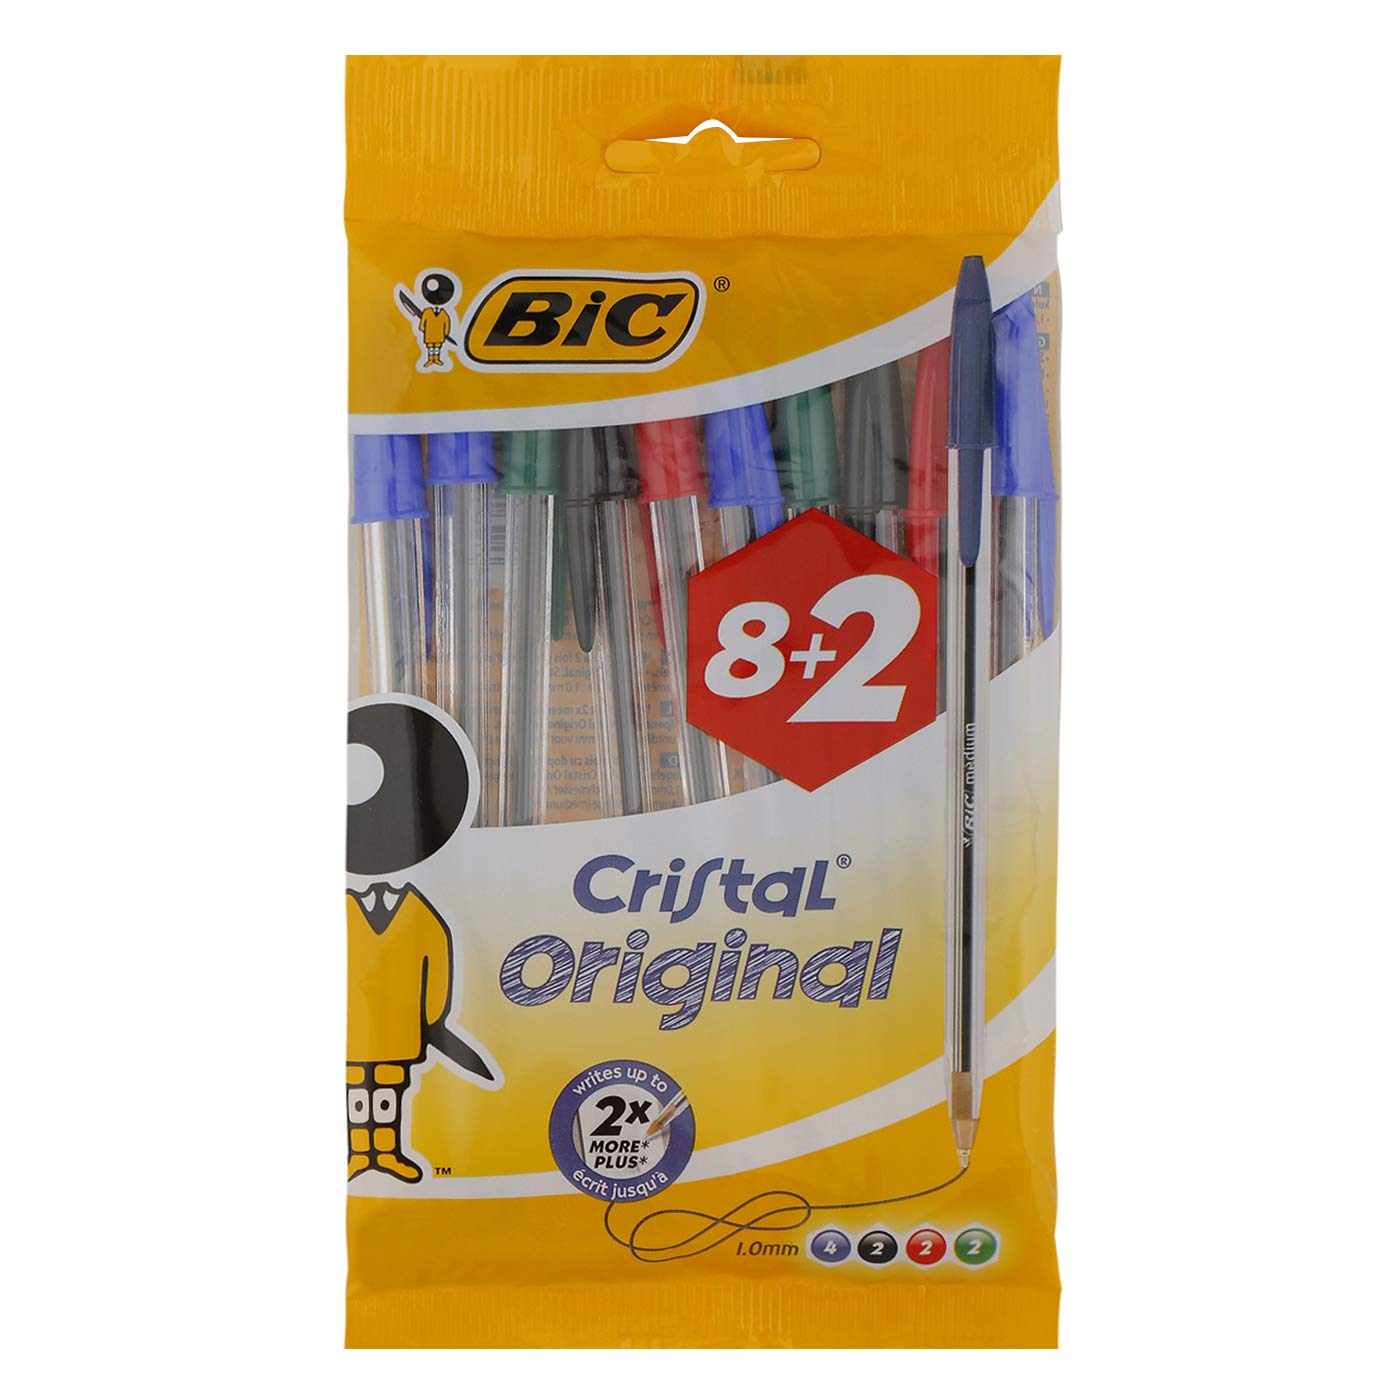 BIC Cristal Original Comfortable Ballpoint Pens Medium Point (1.0 mm) - Assorted Colours, Pack of 8+2 (10 Total)